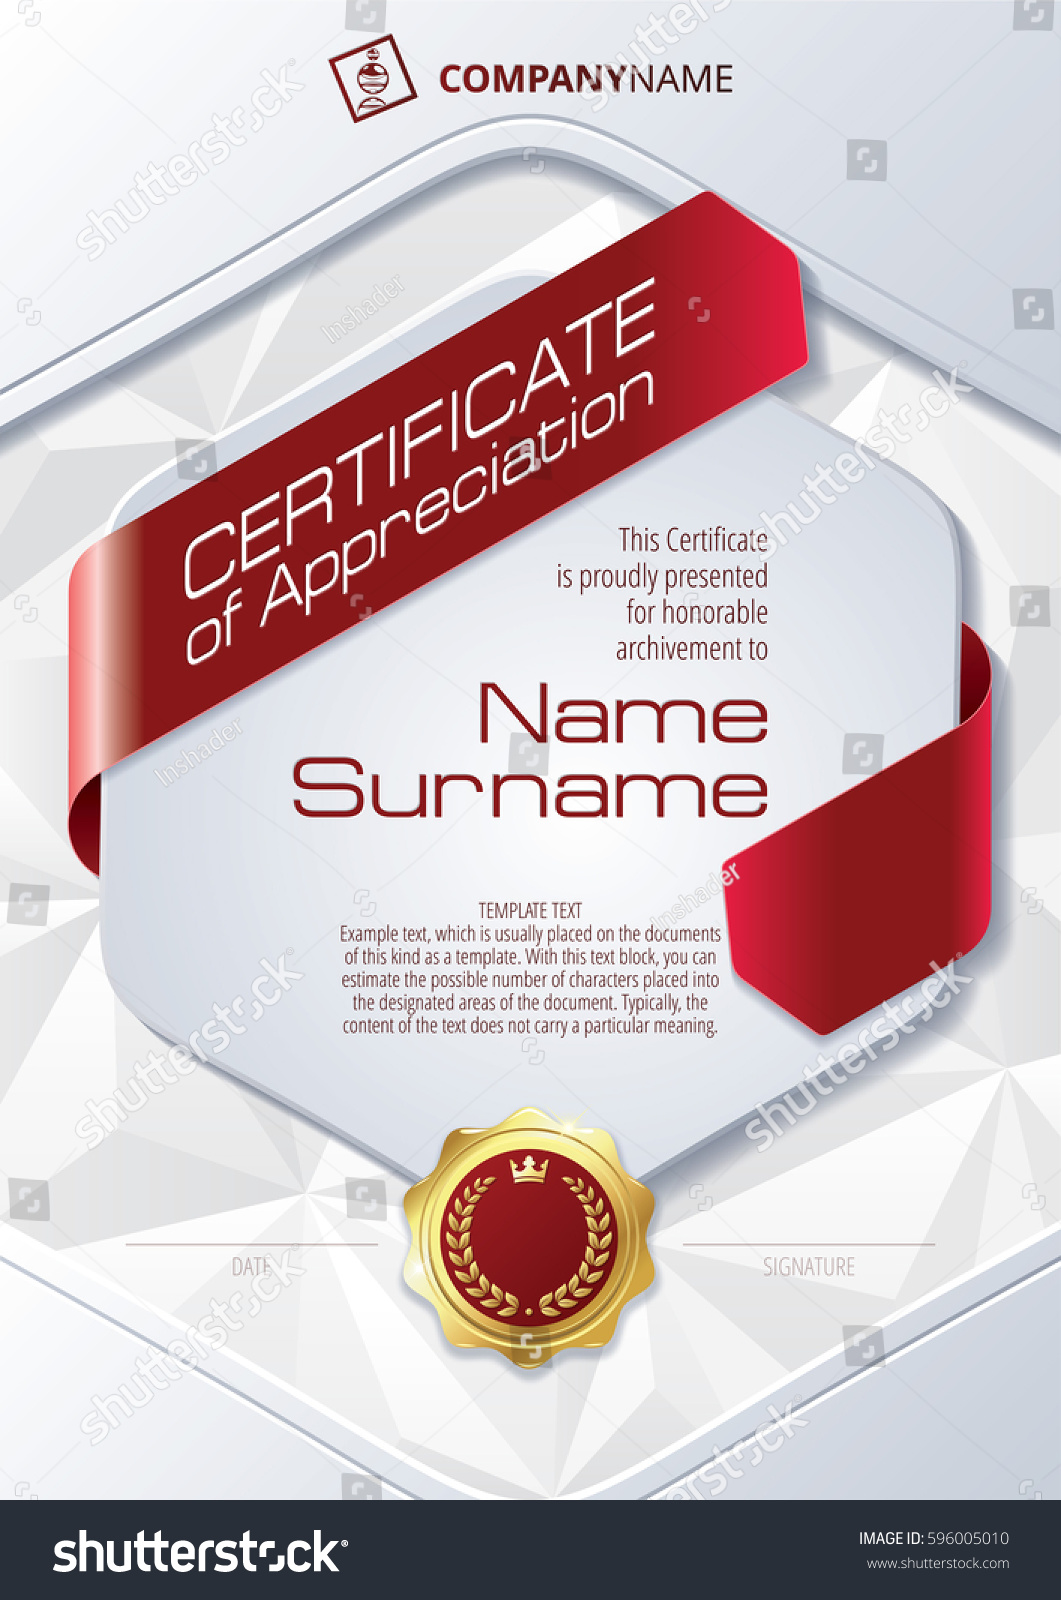 Certificate of appreciation jostens images certificate design certificate of appreciation meaning choice image certificate stylized template certificate appreciation ribbons triangular yadclub images yadclub Choice Image